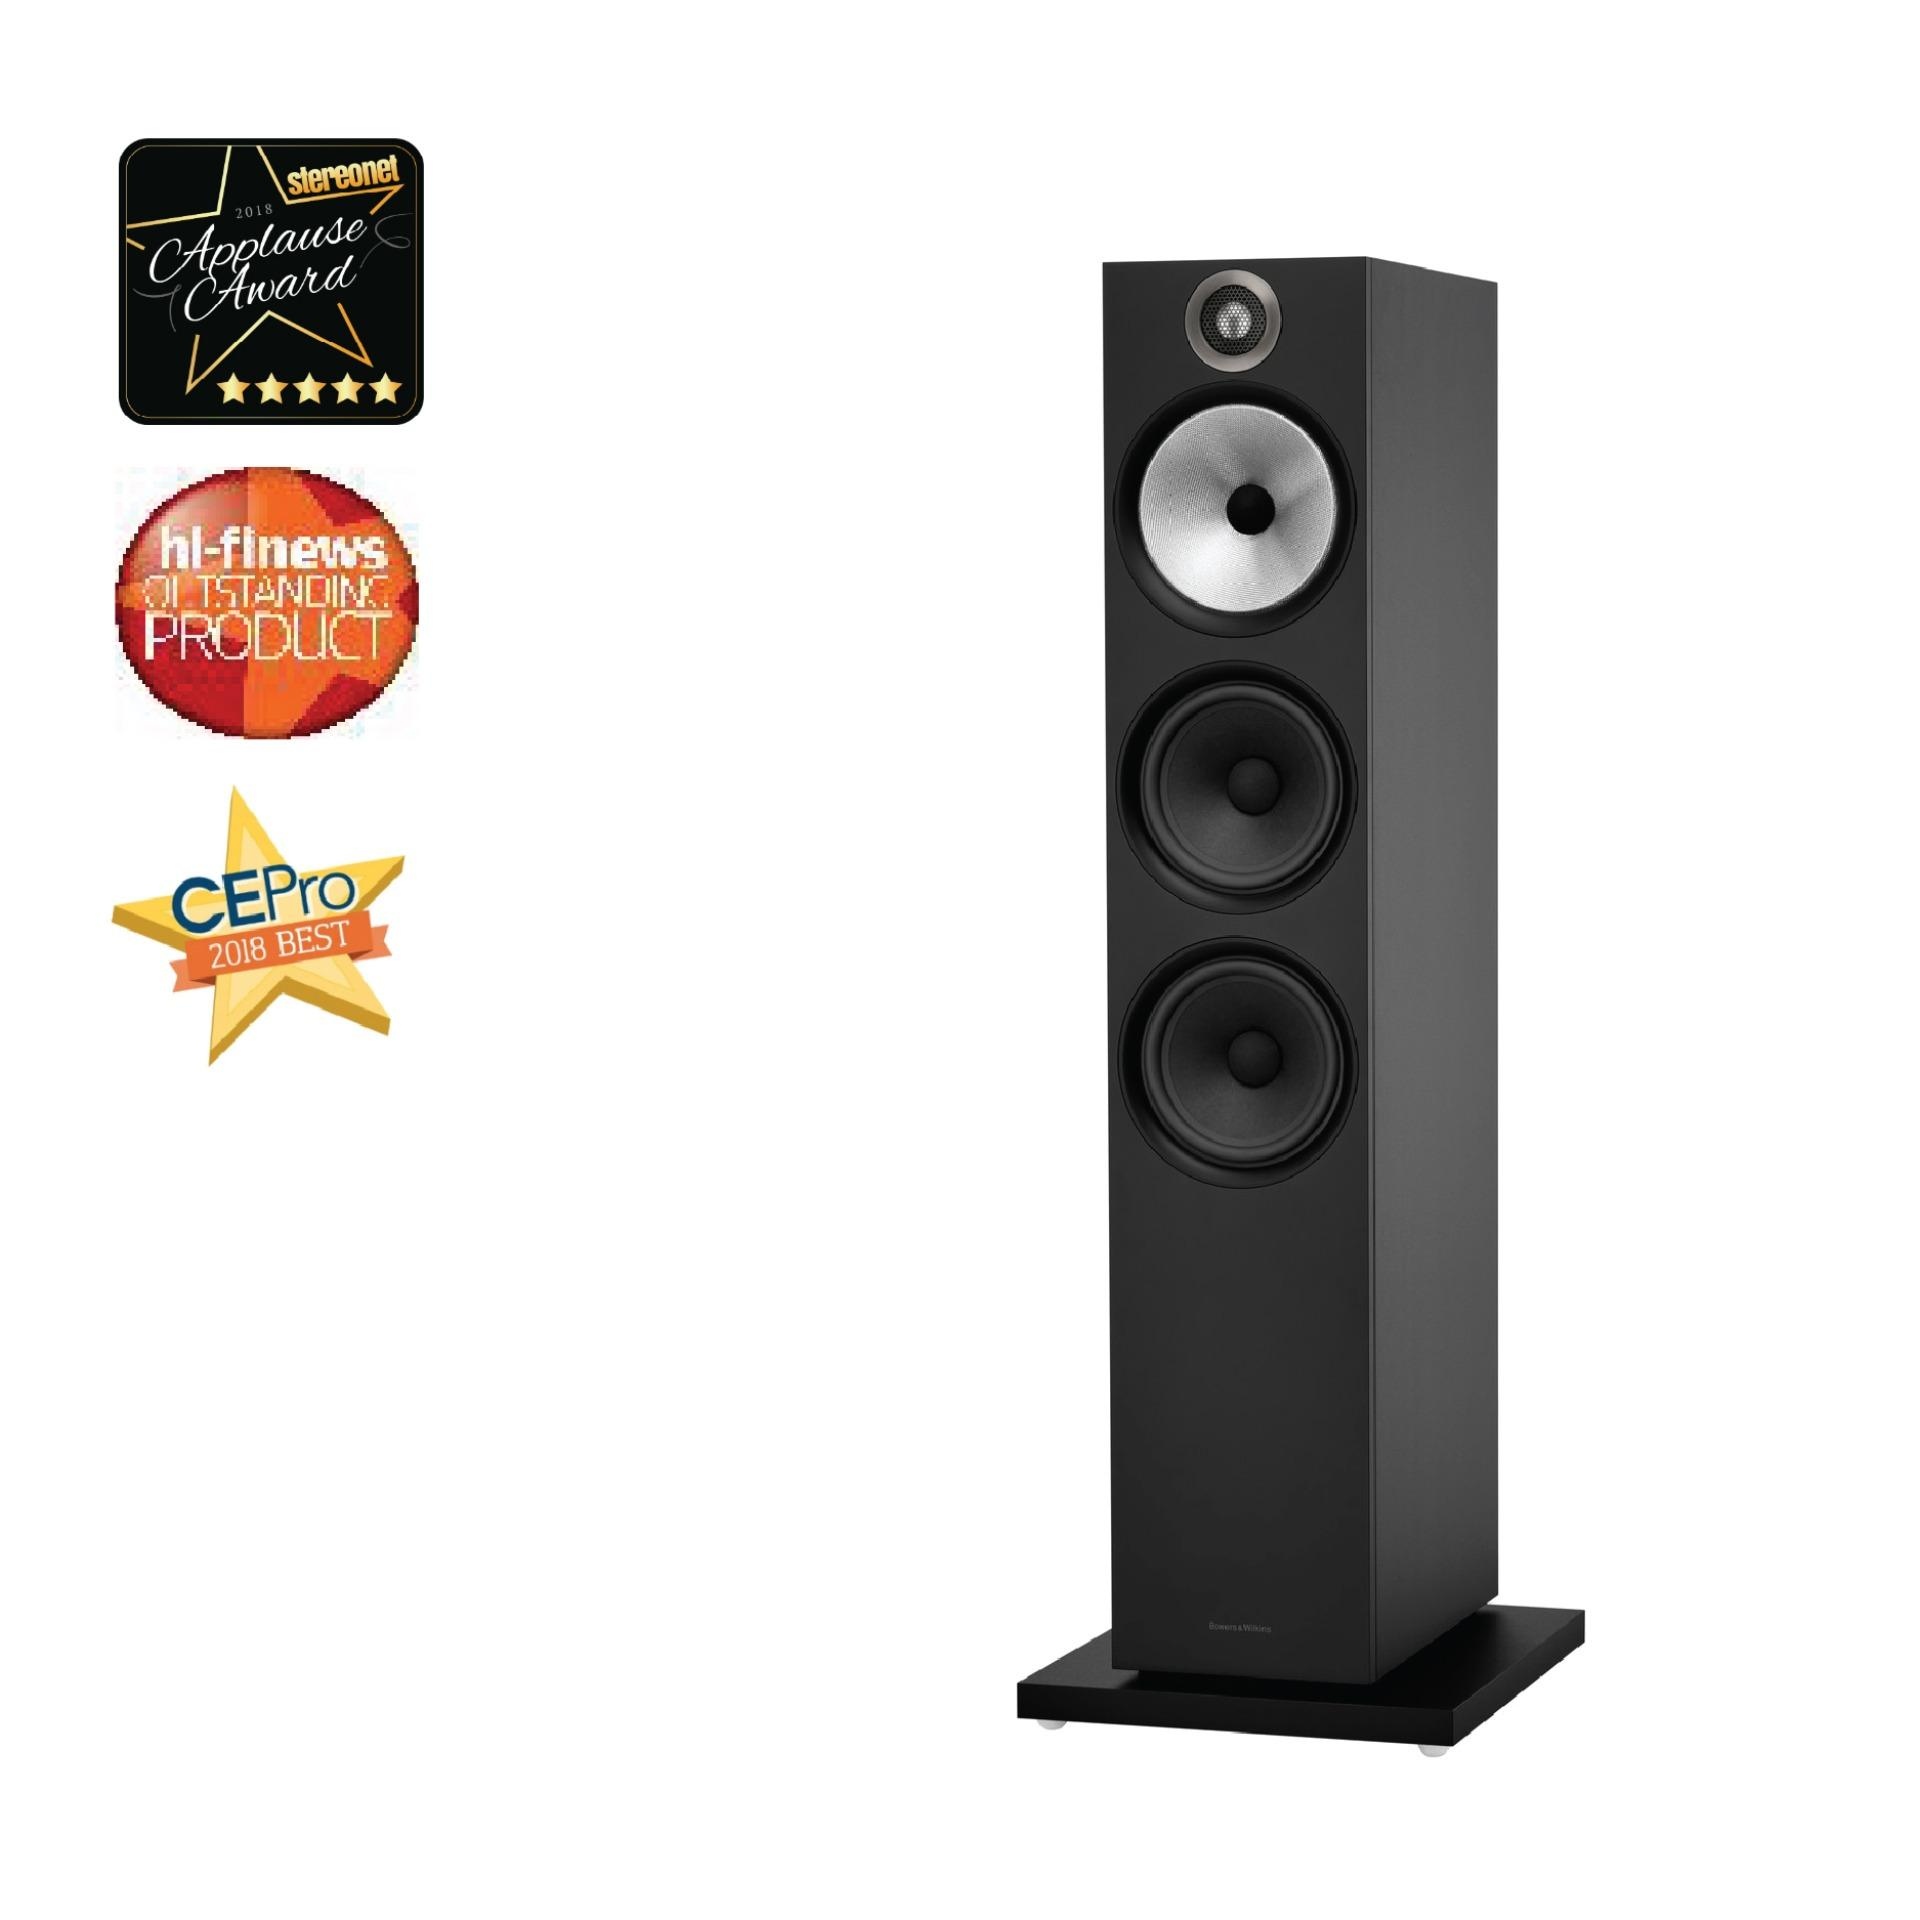 Bowers & Wilkins 603 Floorstanding Loudspeaker Black - One Pair By B&w Bowers & Wilkins Singapore